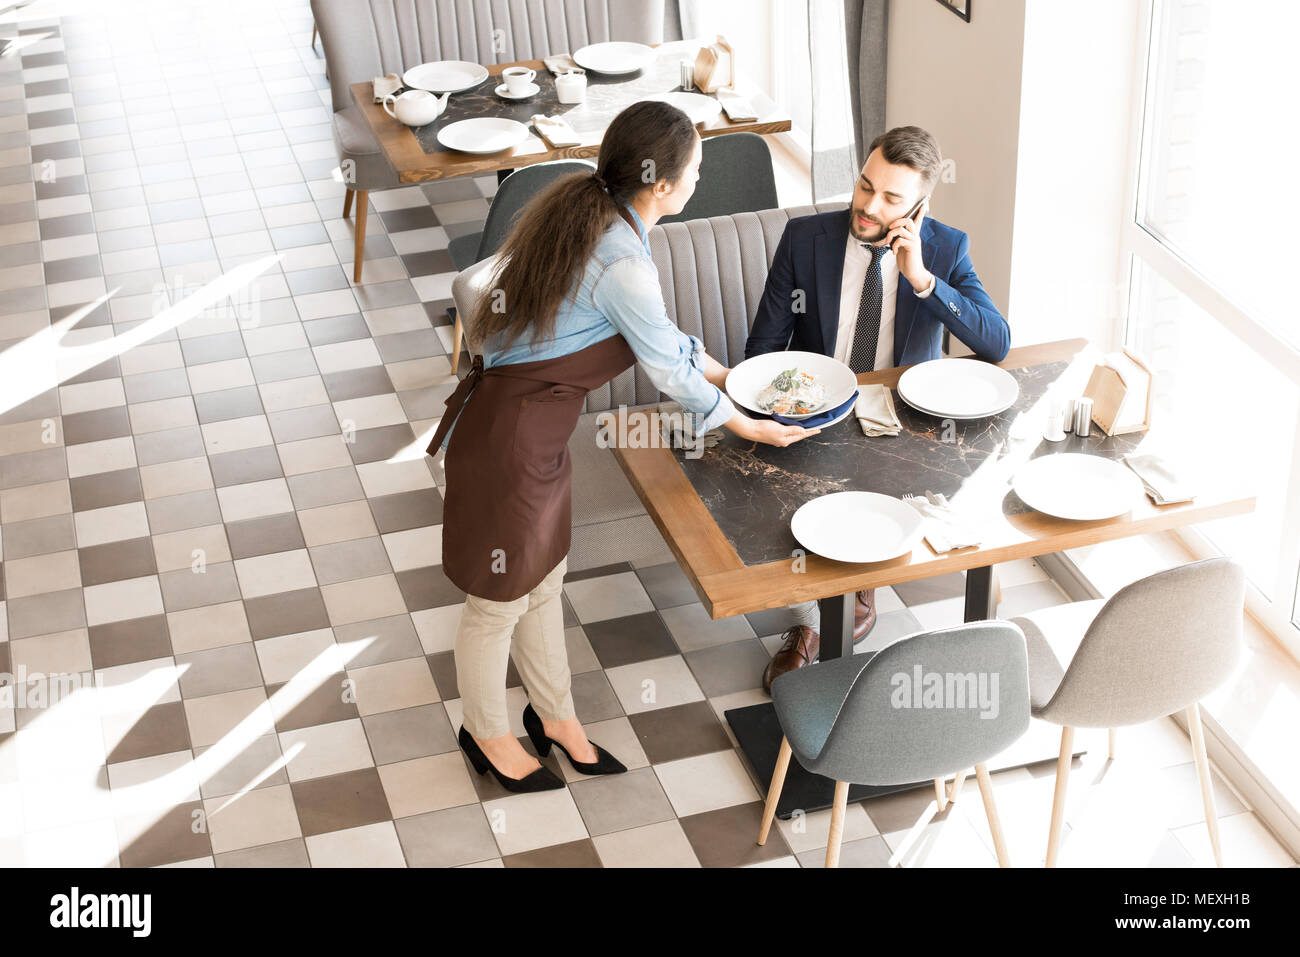 Having business lunch in restaurant - Stock Image